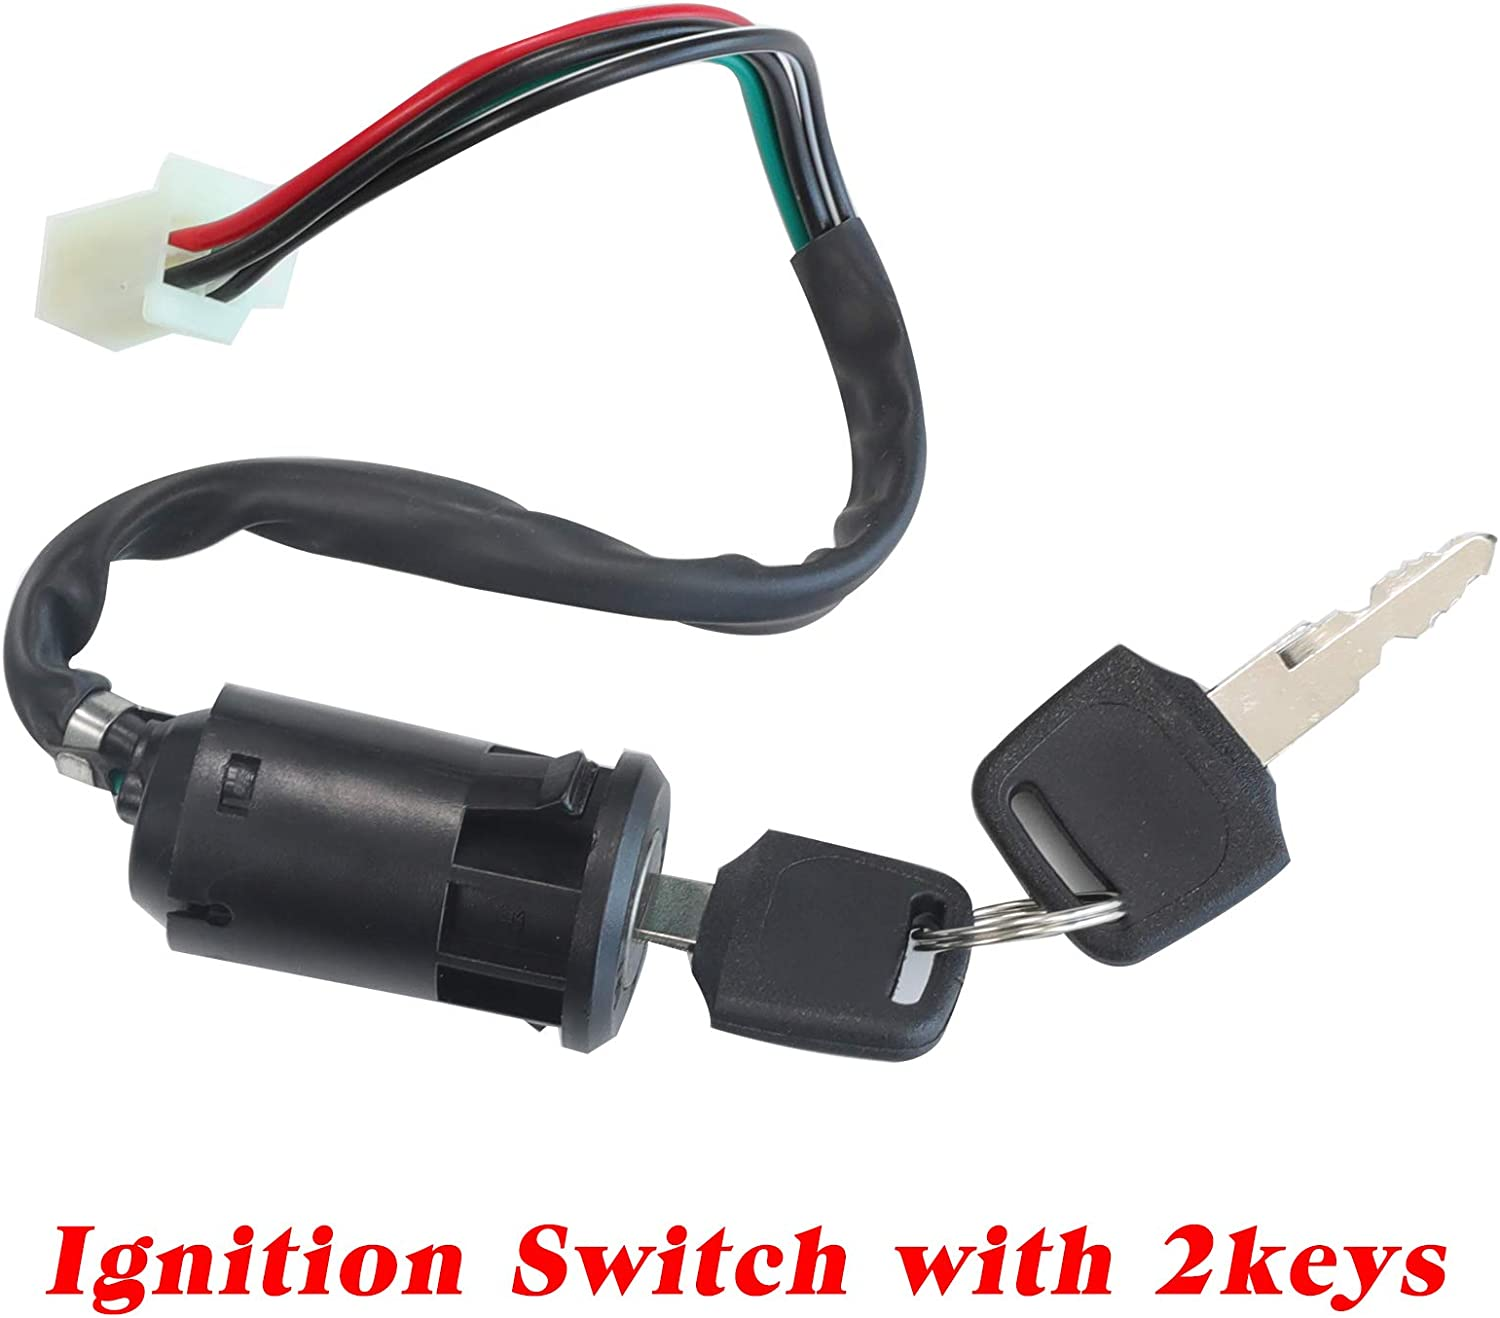 8 parts Necaces Electrics Stator Coil CDI Wiring Harness Solenoid Relay Spark Plug for 4 Stroke ATV 50cc 70cc 110cc 125cc Pit Quad Dirt Bike Go Kart Scooter Moped Parts Complete Wiring Harness